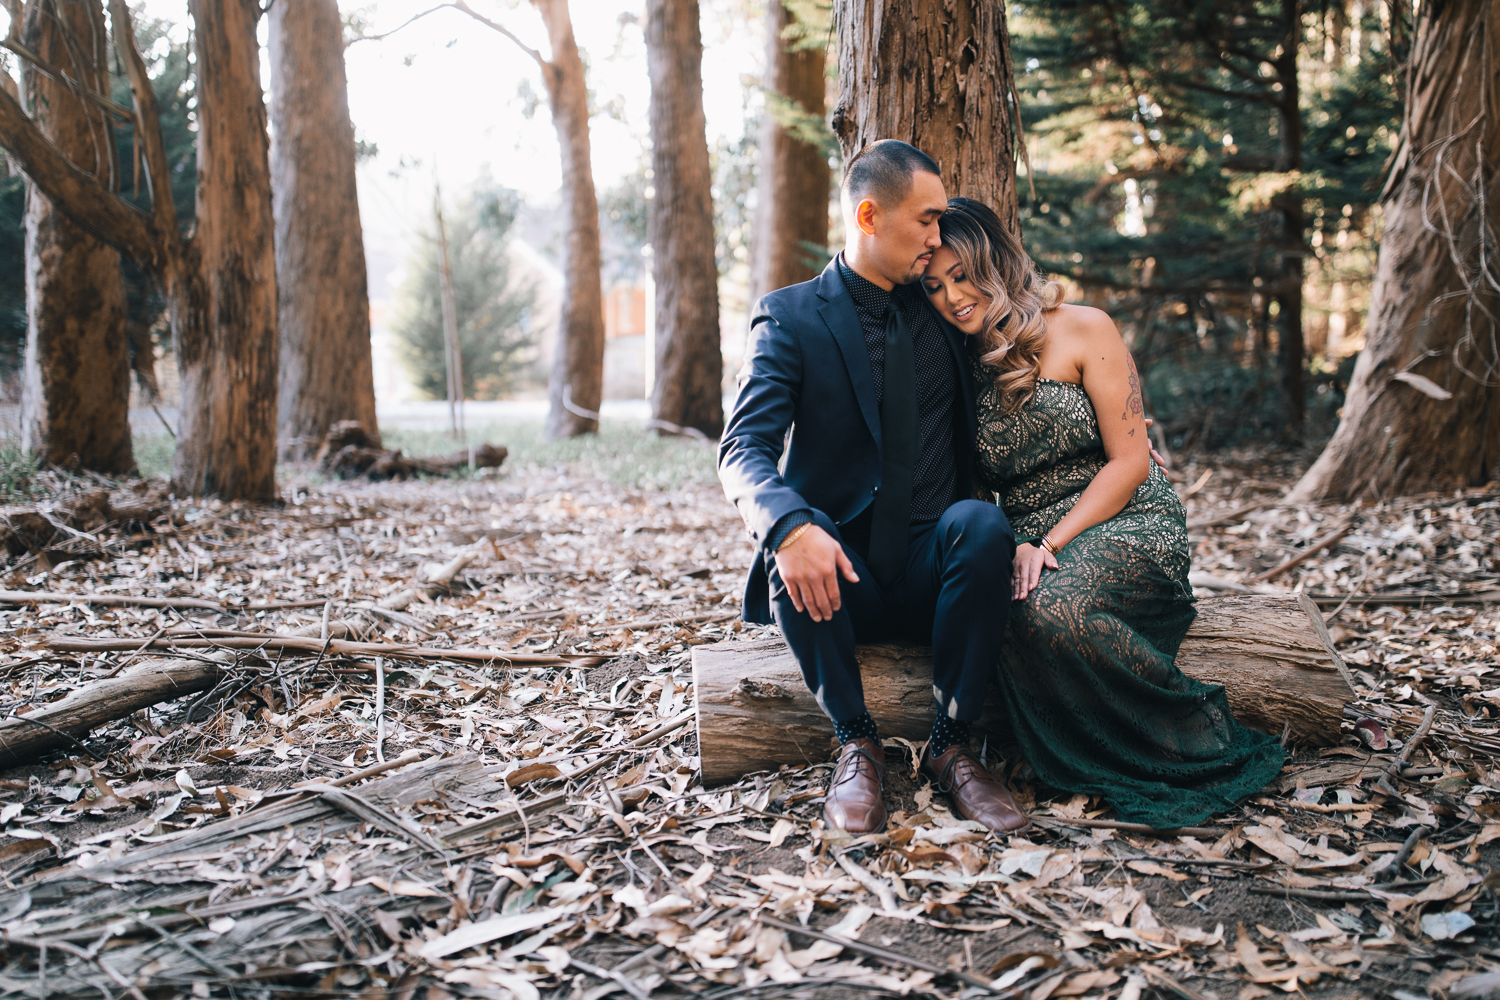 2018_11_ 042018.11.4 Leah + Ed Engagement Session Blog photos Edited For Web 0046.jpg